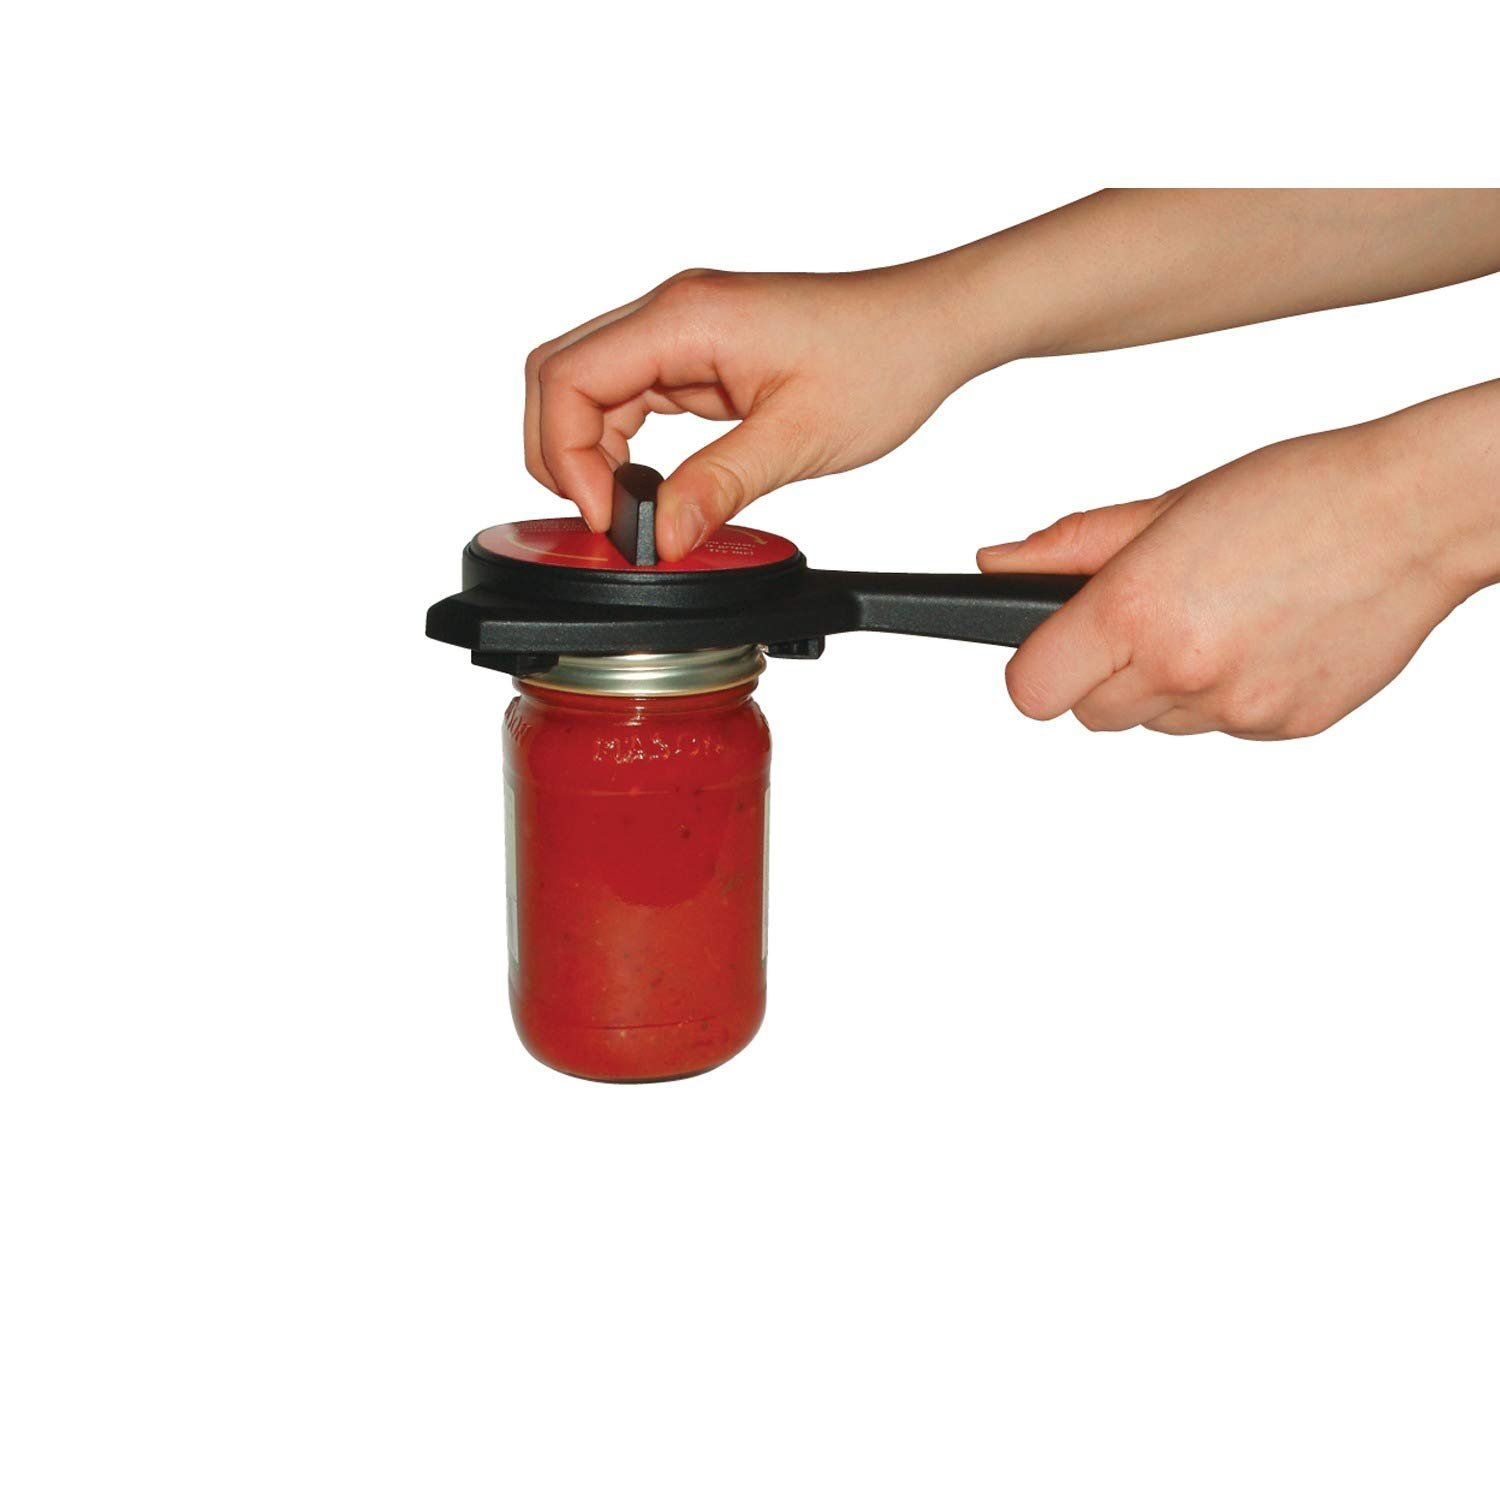 Mightigrip Jar Opener